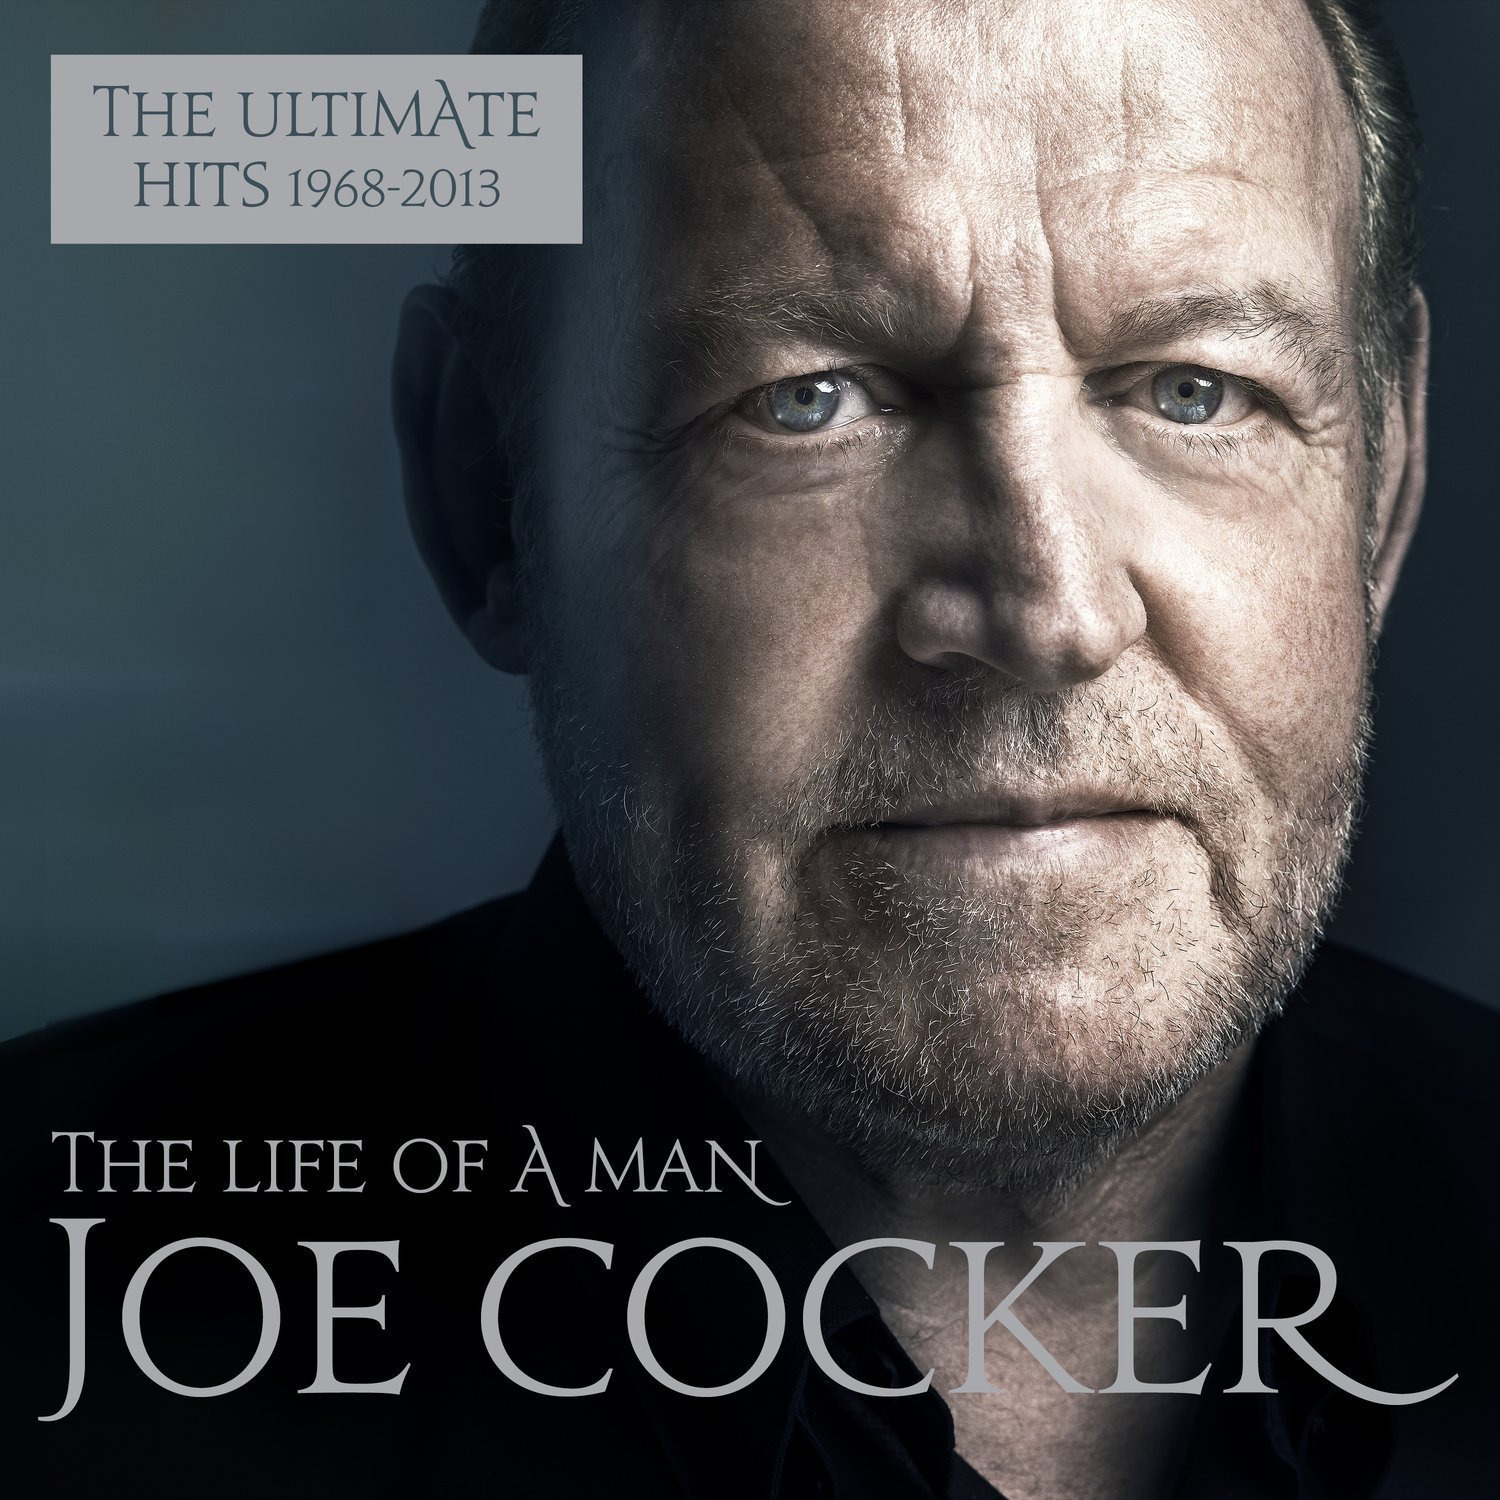 Joe Cocker: The Life of a Man - The Ultimate Hits 1968-2013 [2 CDs]